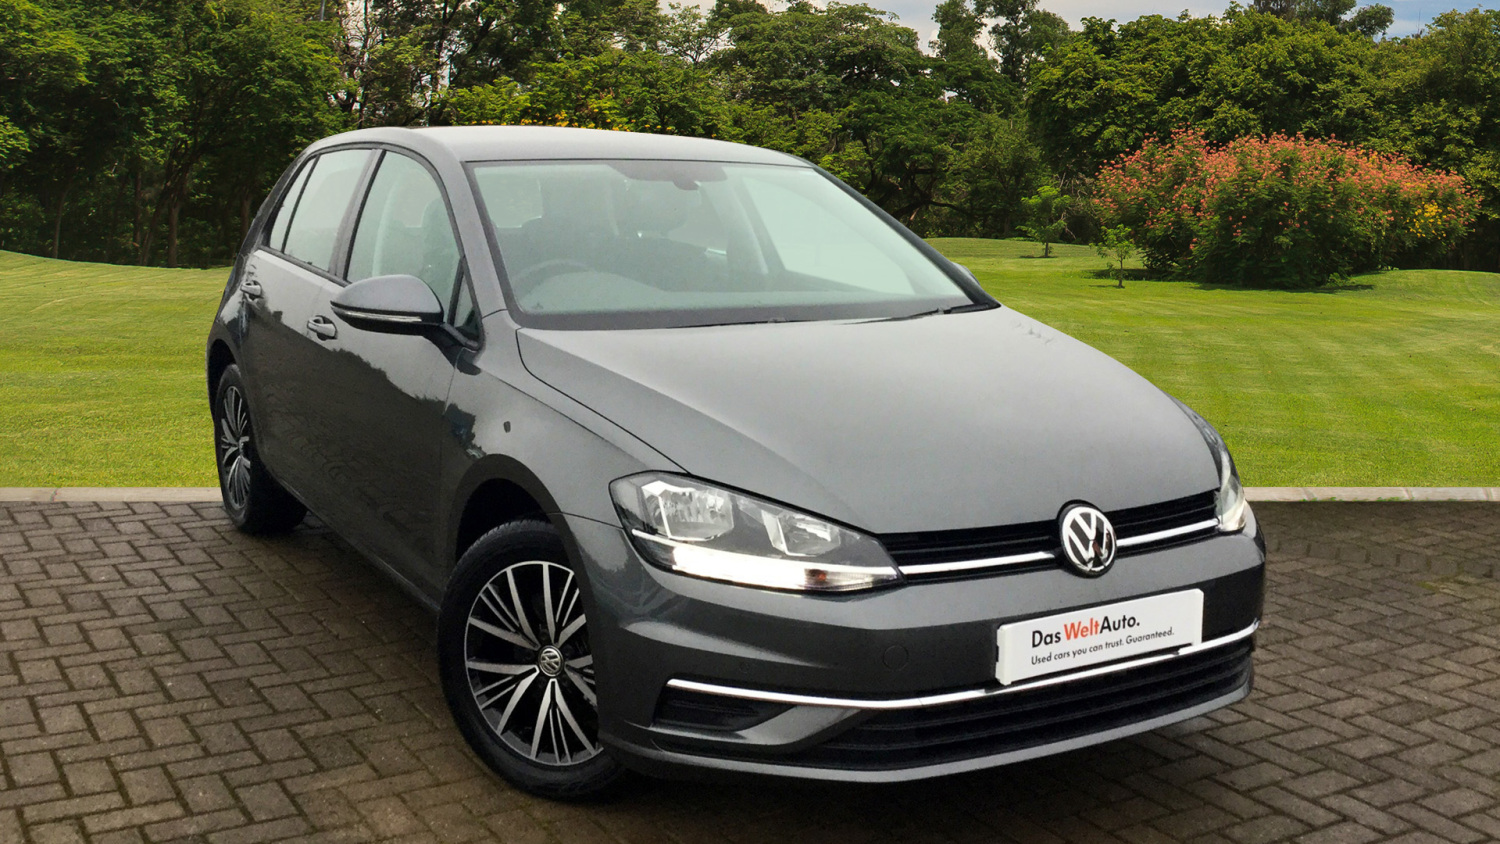 used volkswagen golf 1 4 tsi se nav 5dr petrol hatchback for sale in scotland macklin motors. Black Bedroom Furniture Sets. Home Design Ideas